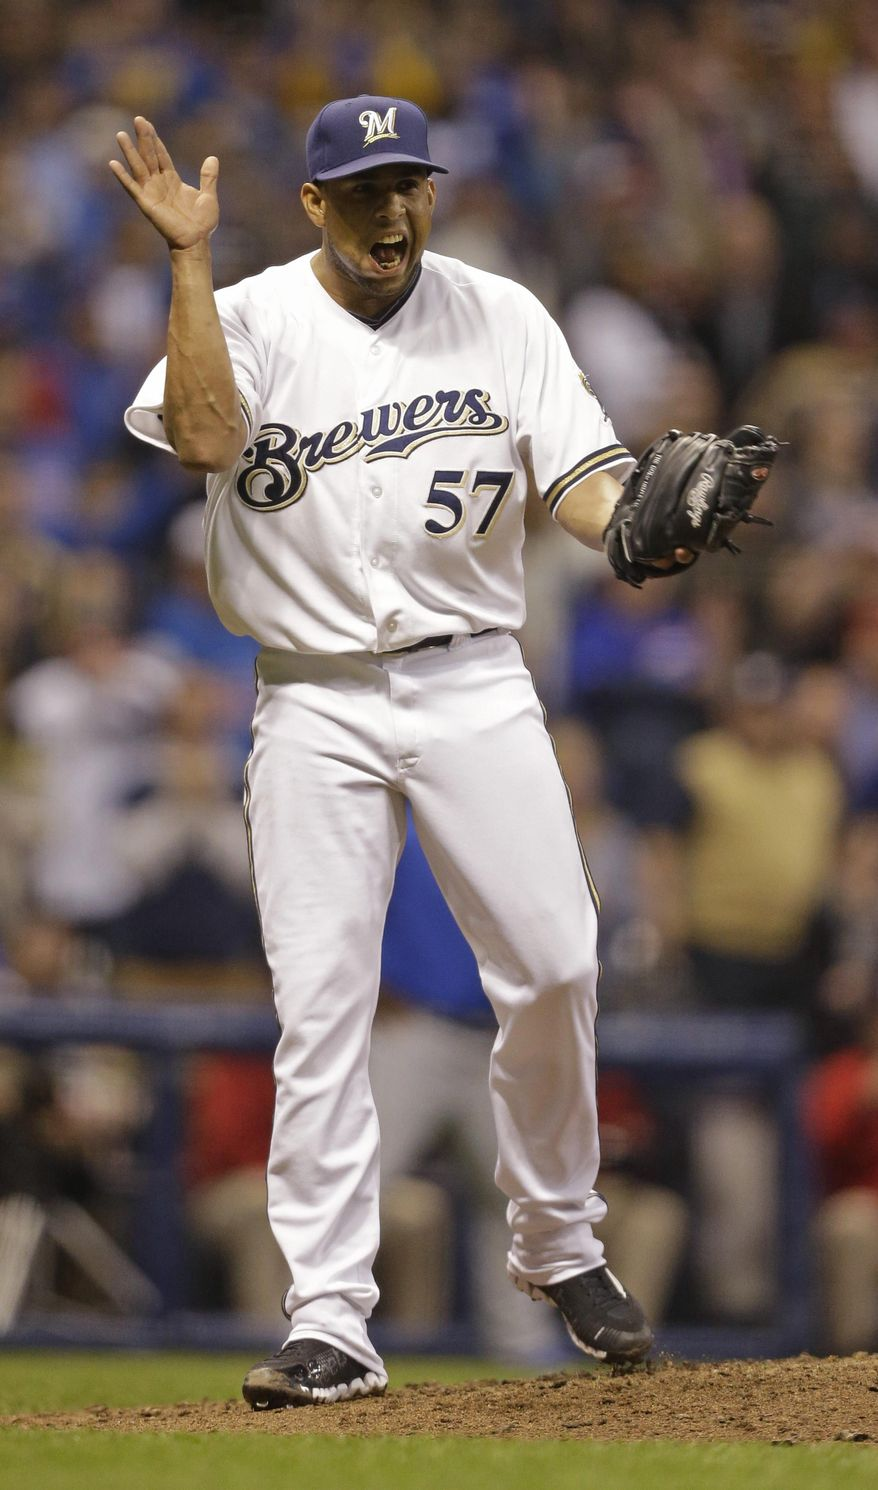 Milwaukee Brewers' Francisco Rodriguez reacts after getting the last out against the Chicago Cubs during the ninth inning of a baseball game on Saturday, April 26, 2014, in Milwaukee. The Brewers won 5-3. (AP Photo/Jeffrey Phelps)